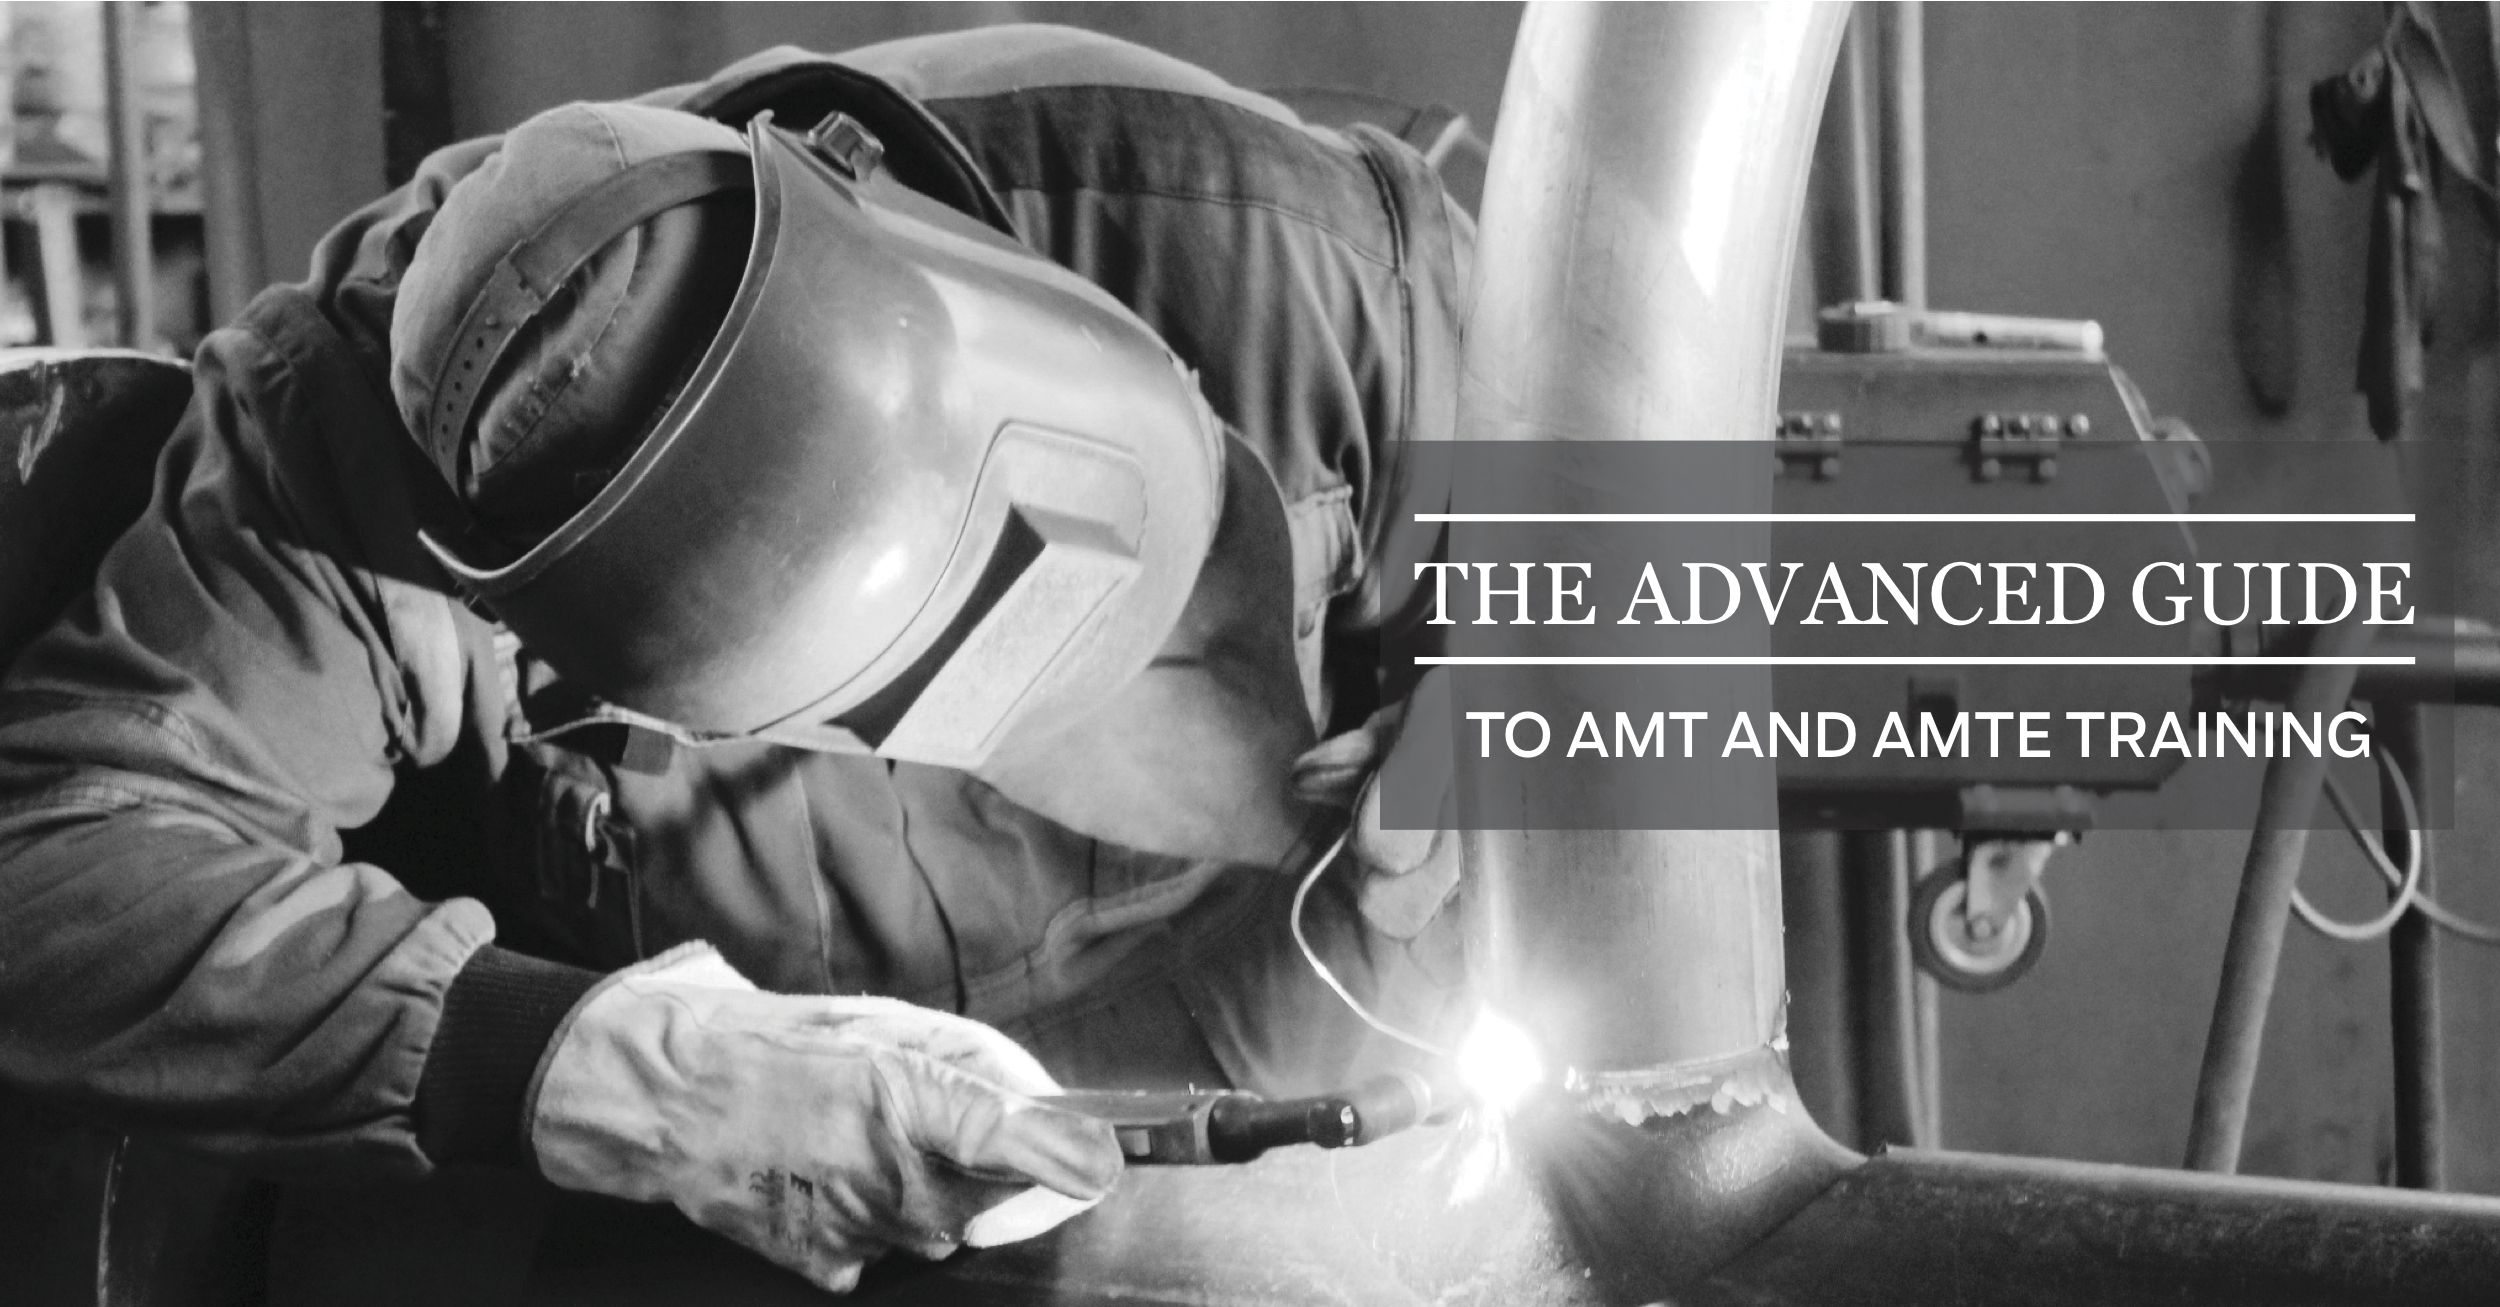 The Advanced Guide to AMT and AMTE Training | AIM